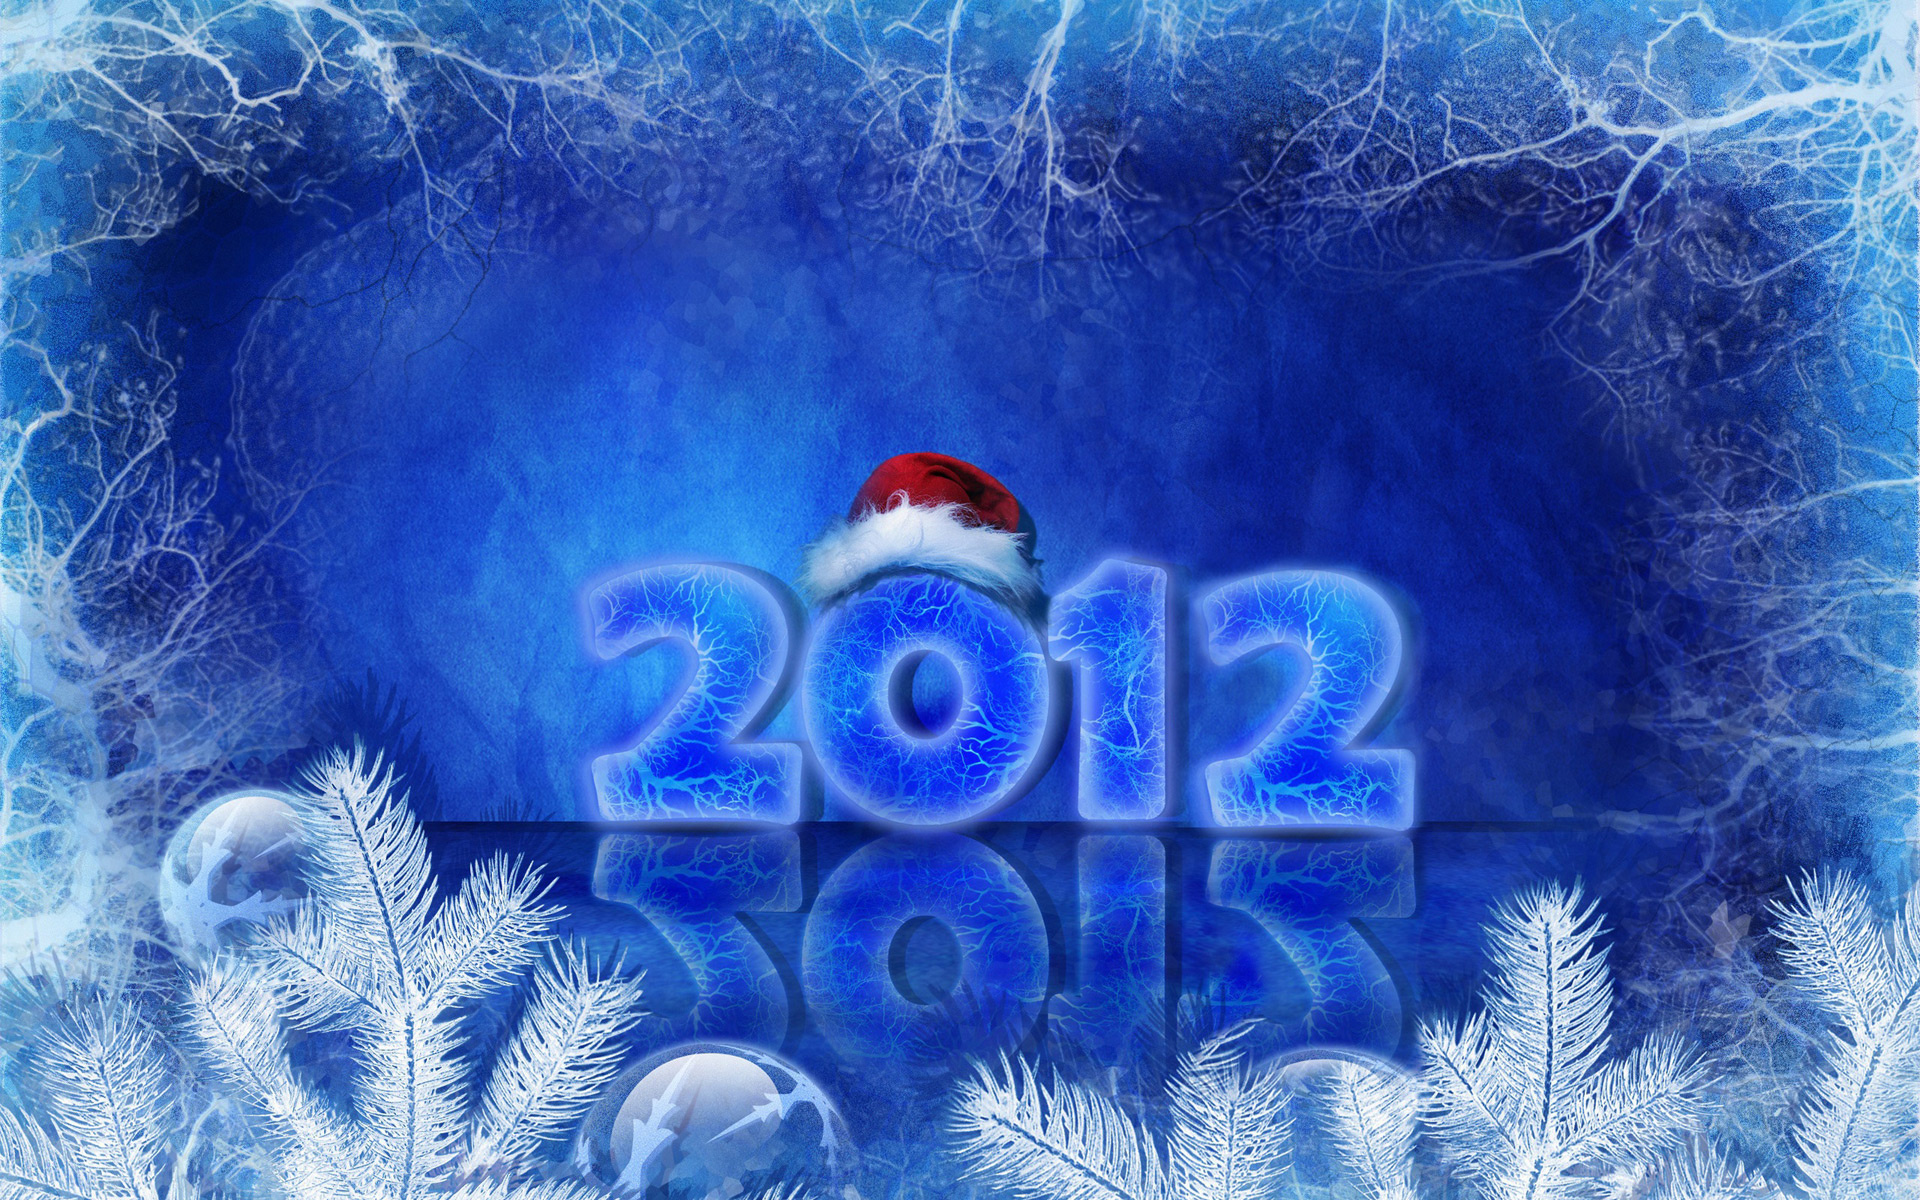 2012 Happy New Year Holidays